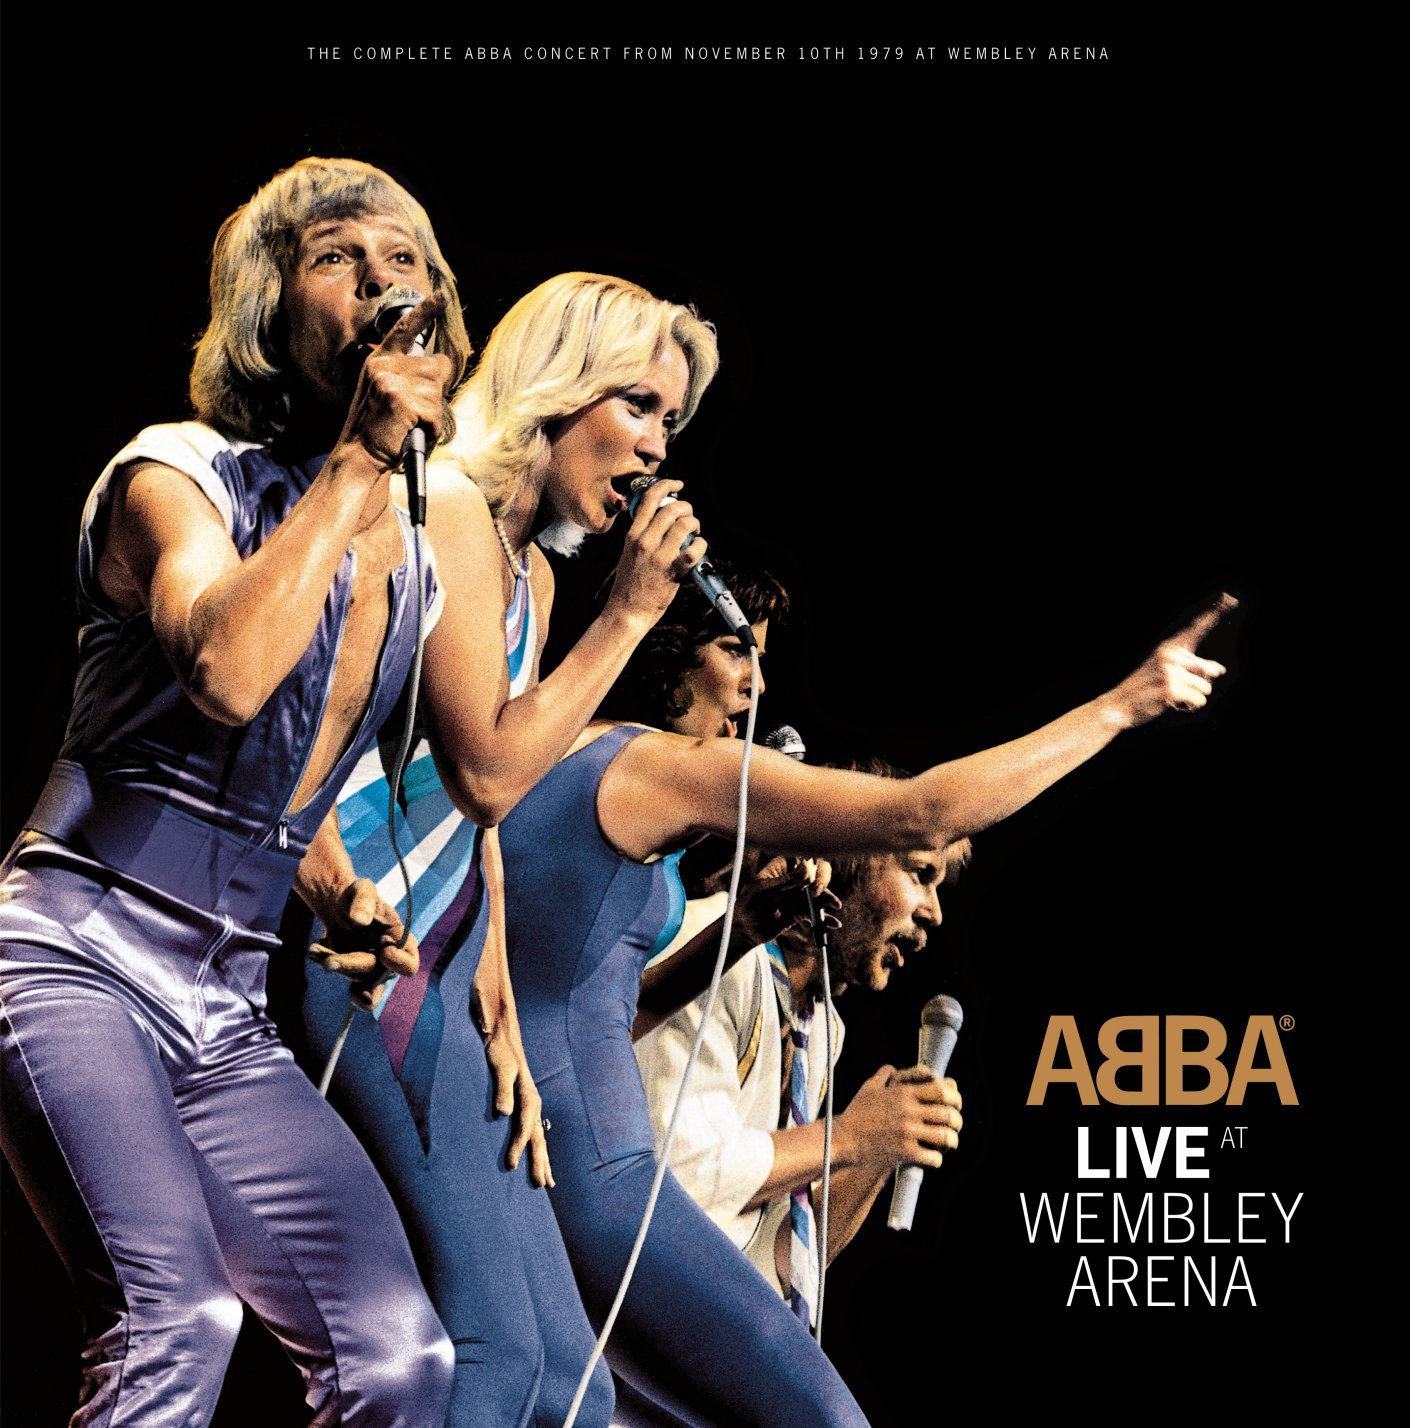 Live At Wembley [3 LP] by Polydor